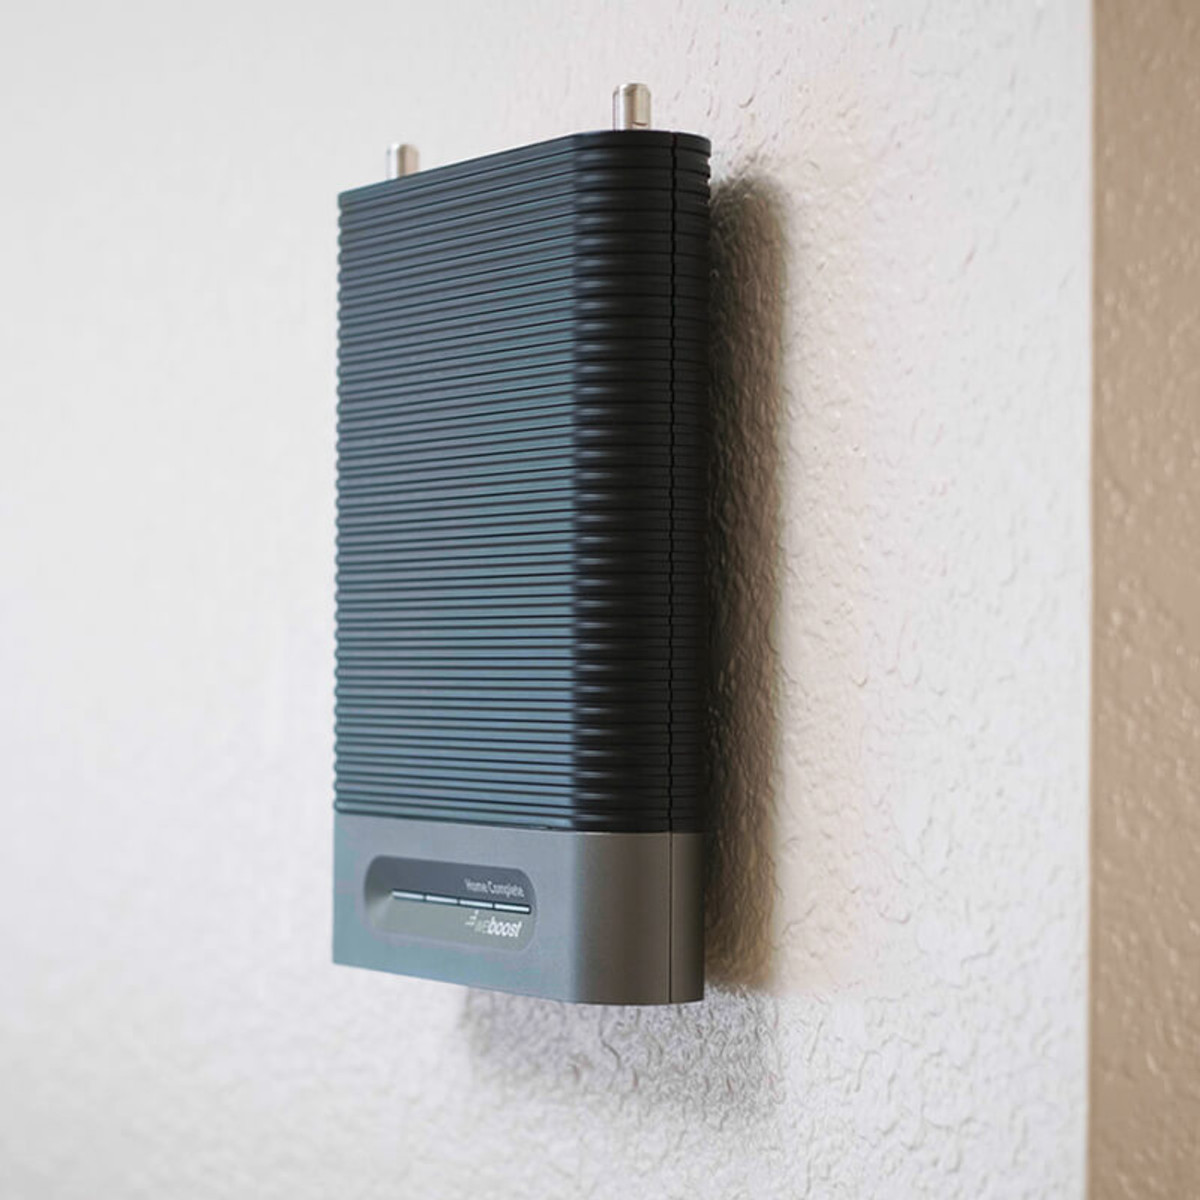 weBoost Home Complete Signal Booster Amplifier Mounted